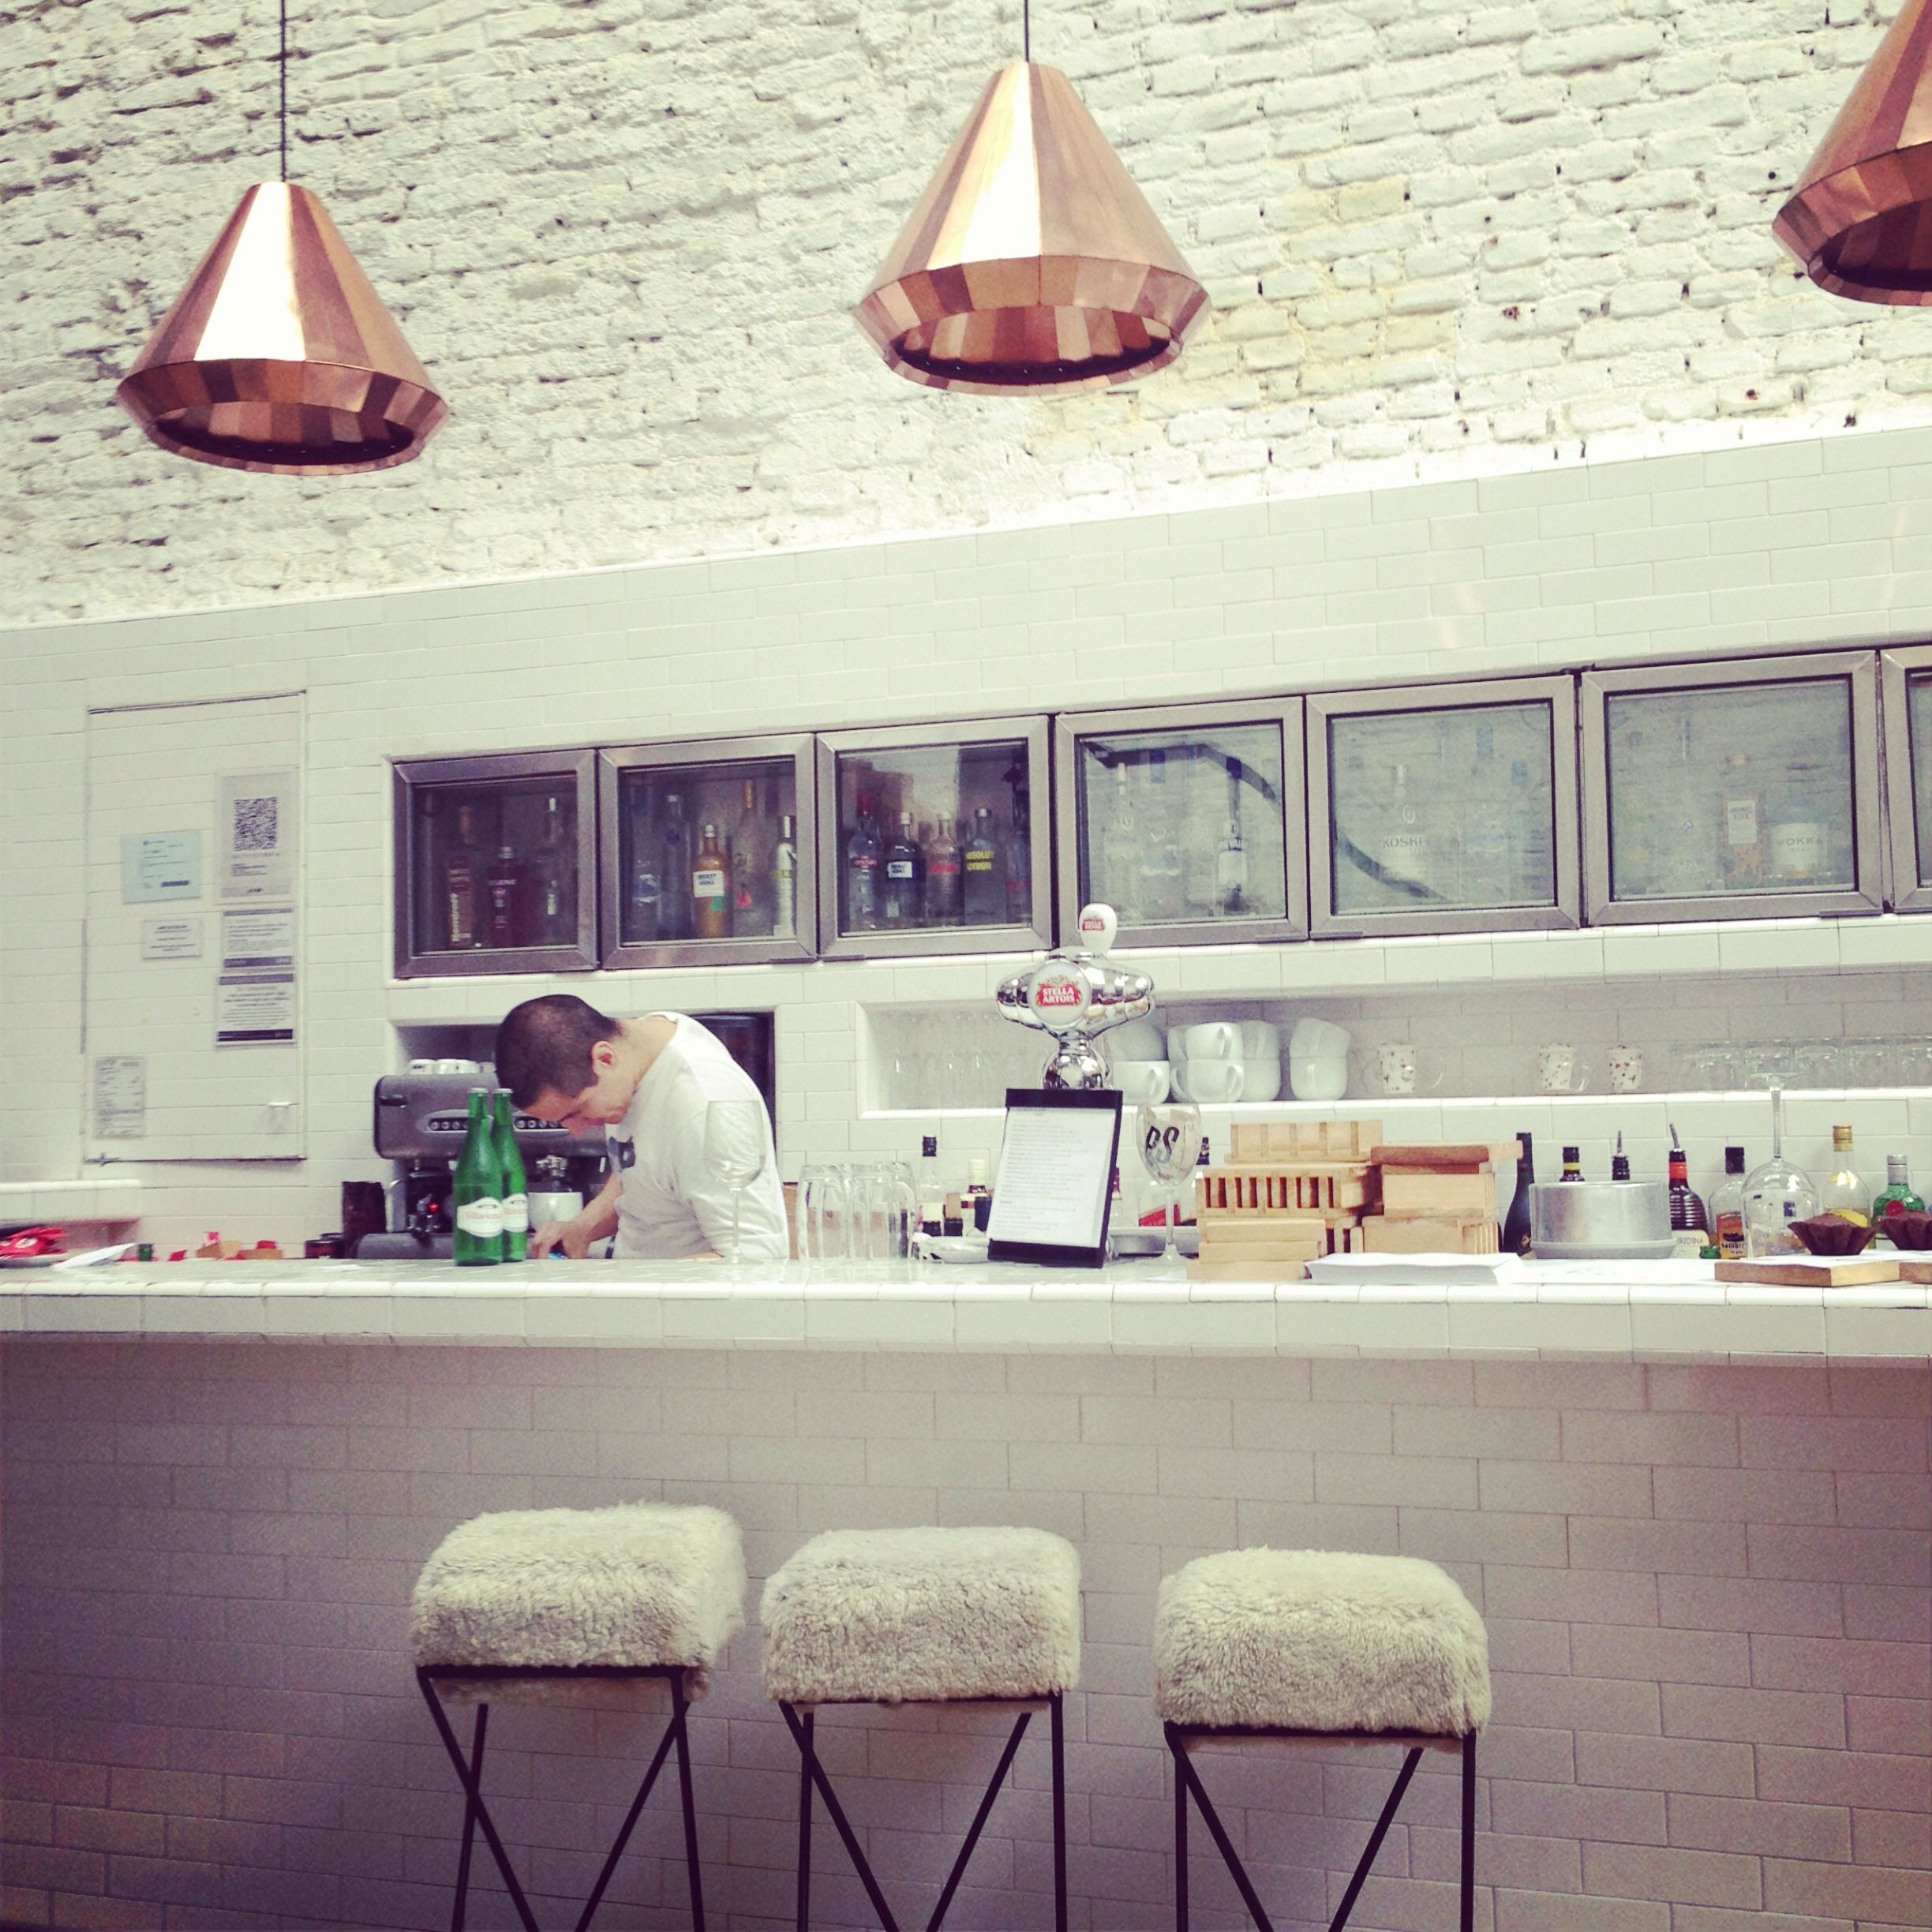 A Scandinavian design style at Olsen, Palermo Hollywood, Buenos Aires, Argentina.   #olsen #palermo #buenosaires #argentina #cafe #design #interior #scandinavia